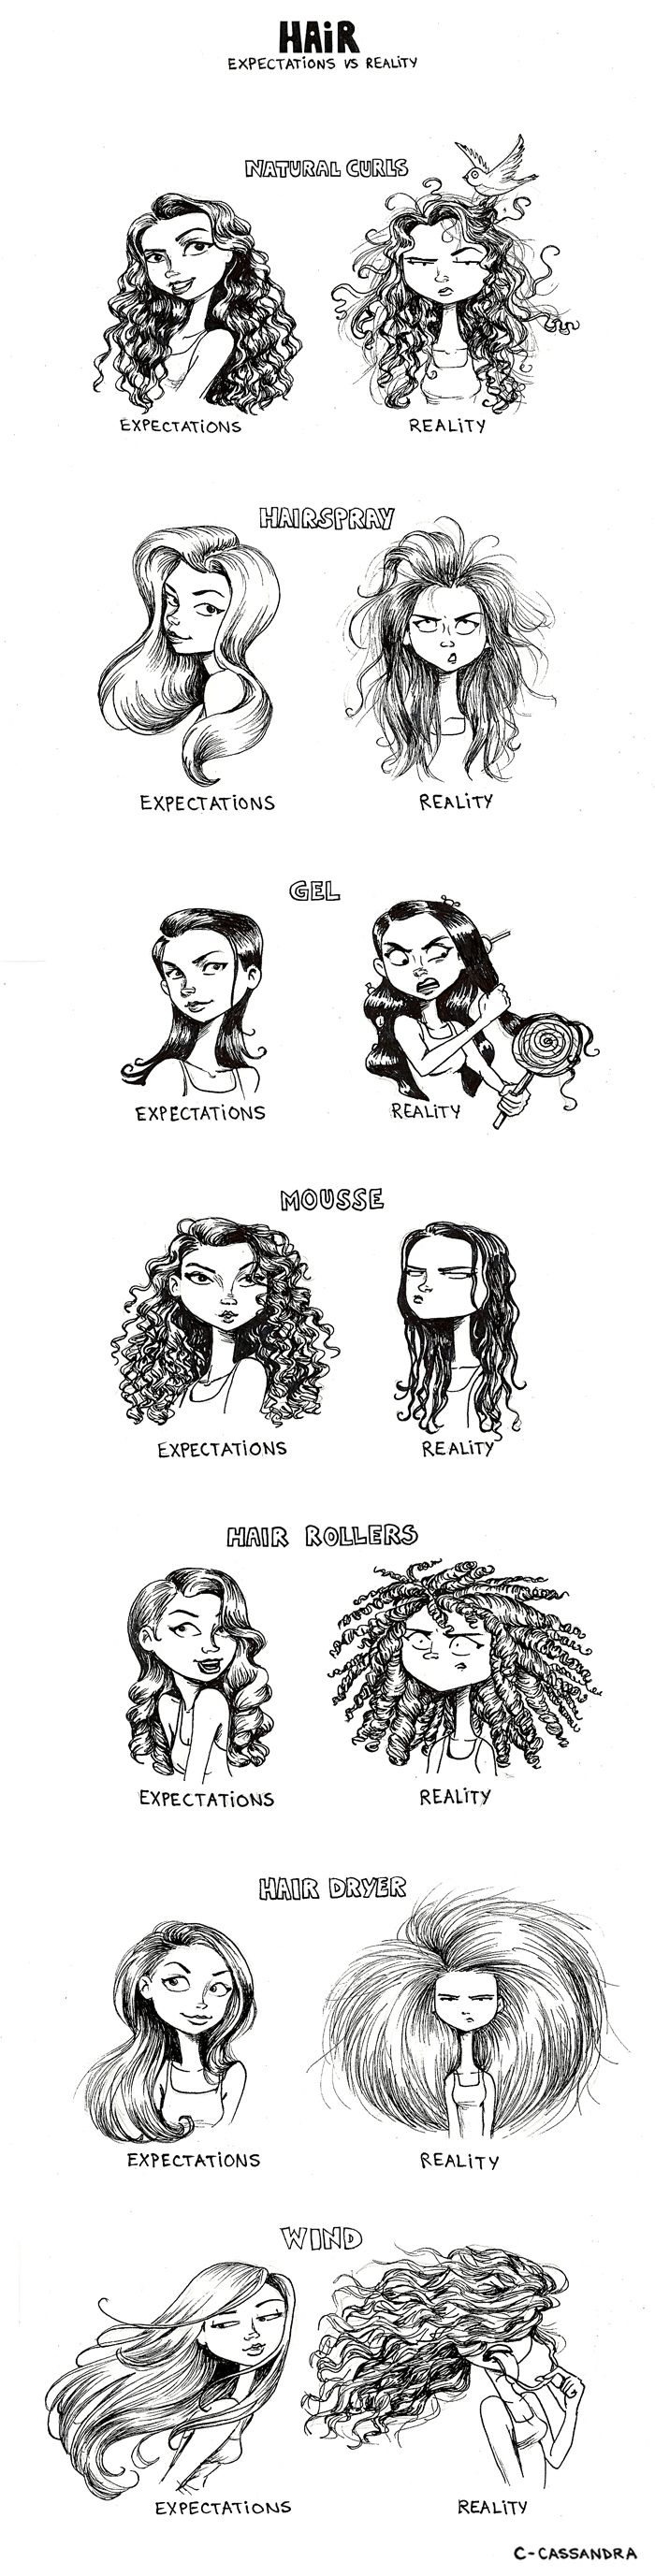 C. Cassandra - Comics - Hair expectations vs reality